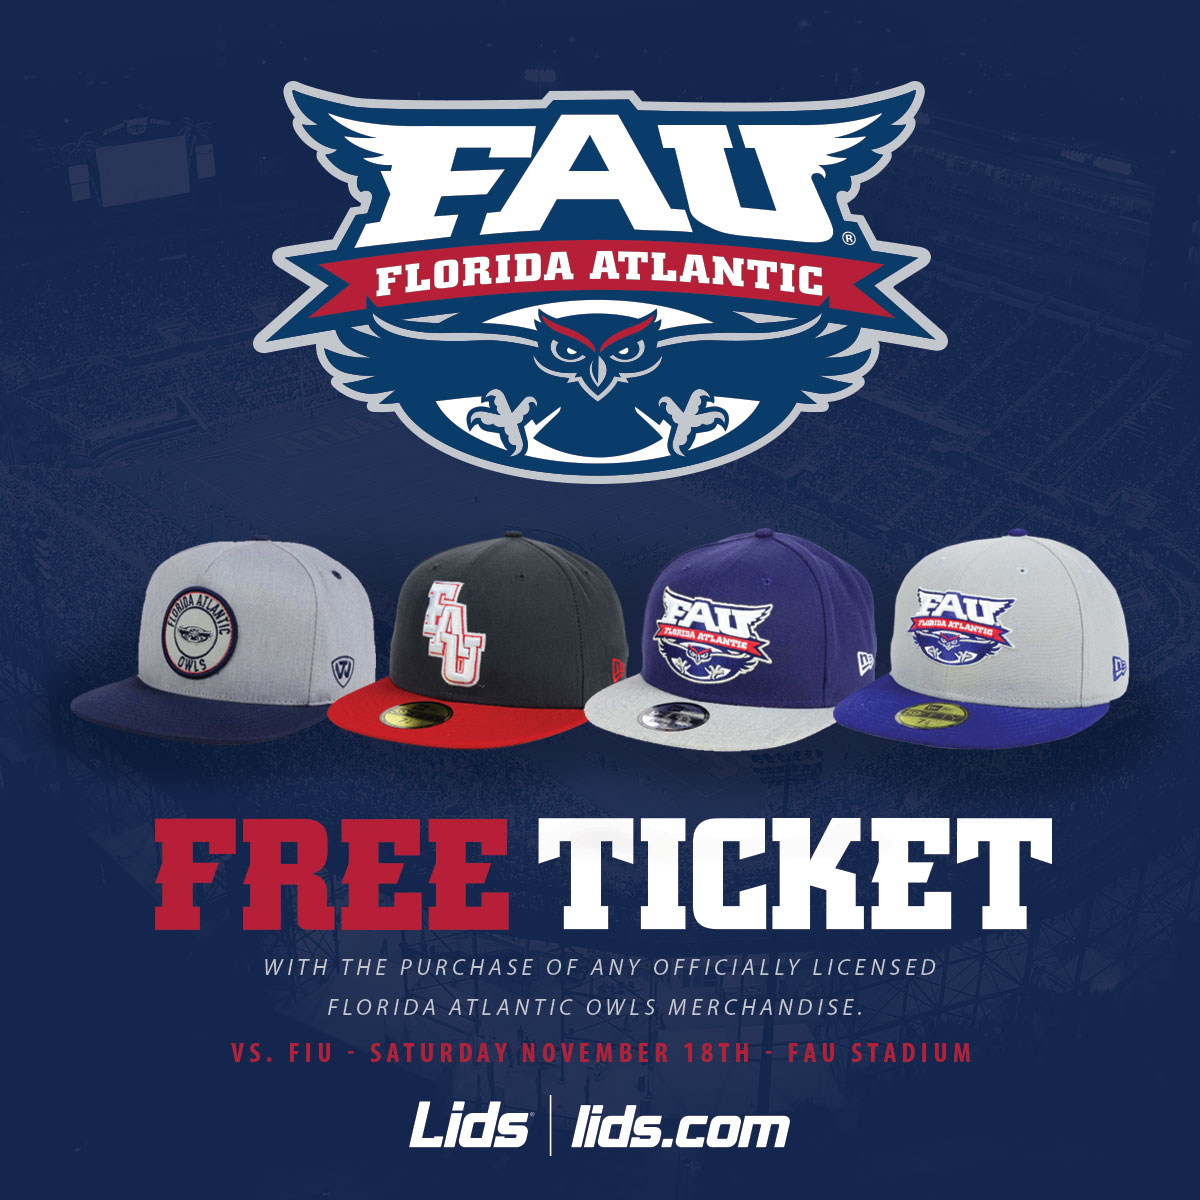 FAU x Lids - Social Media Promotion